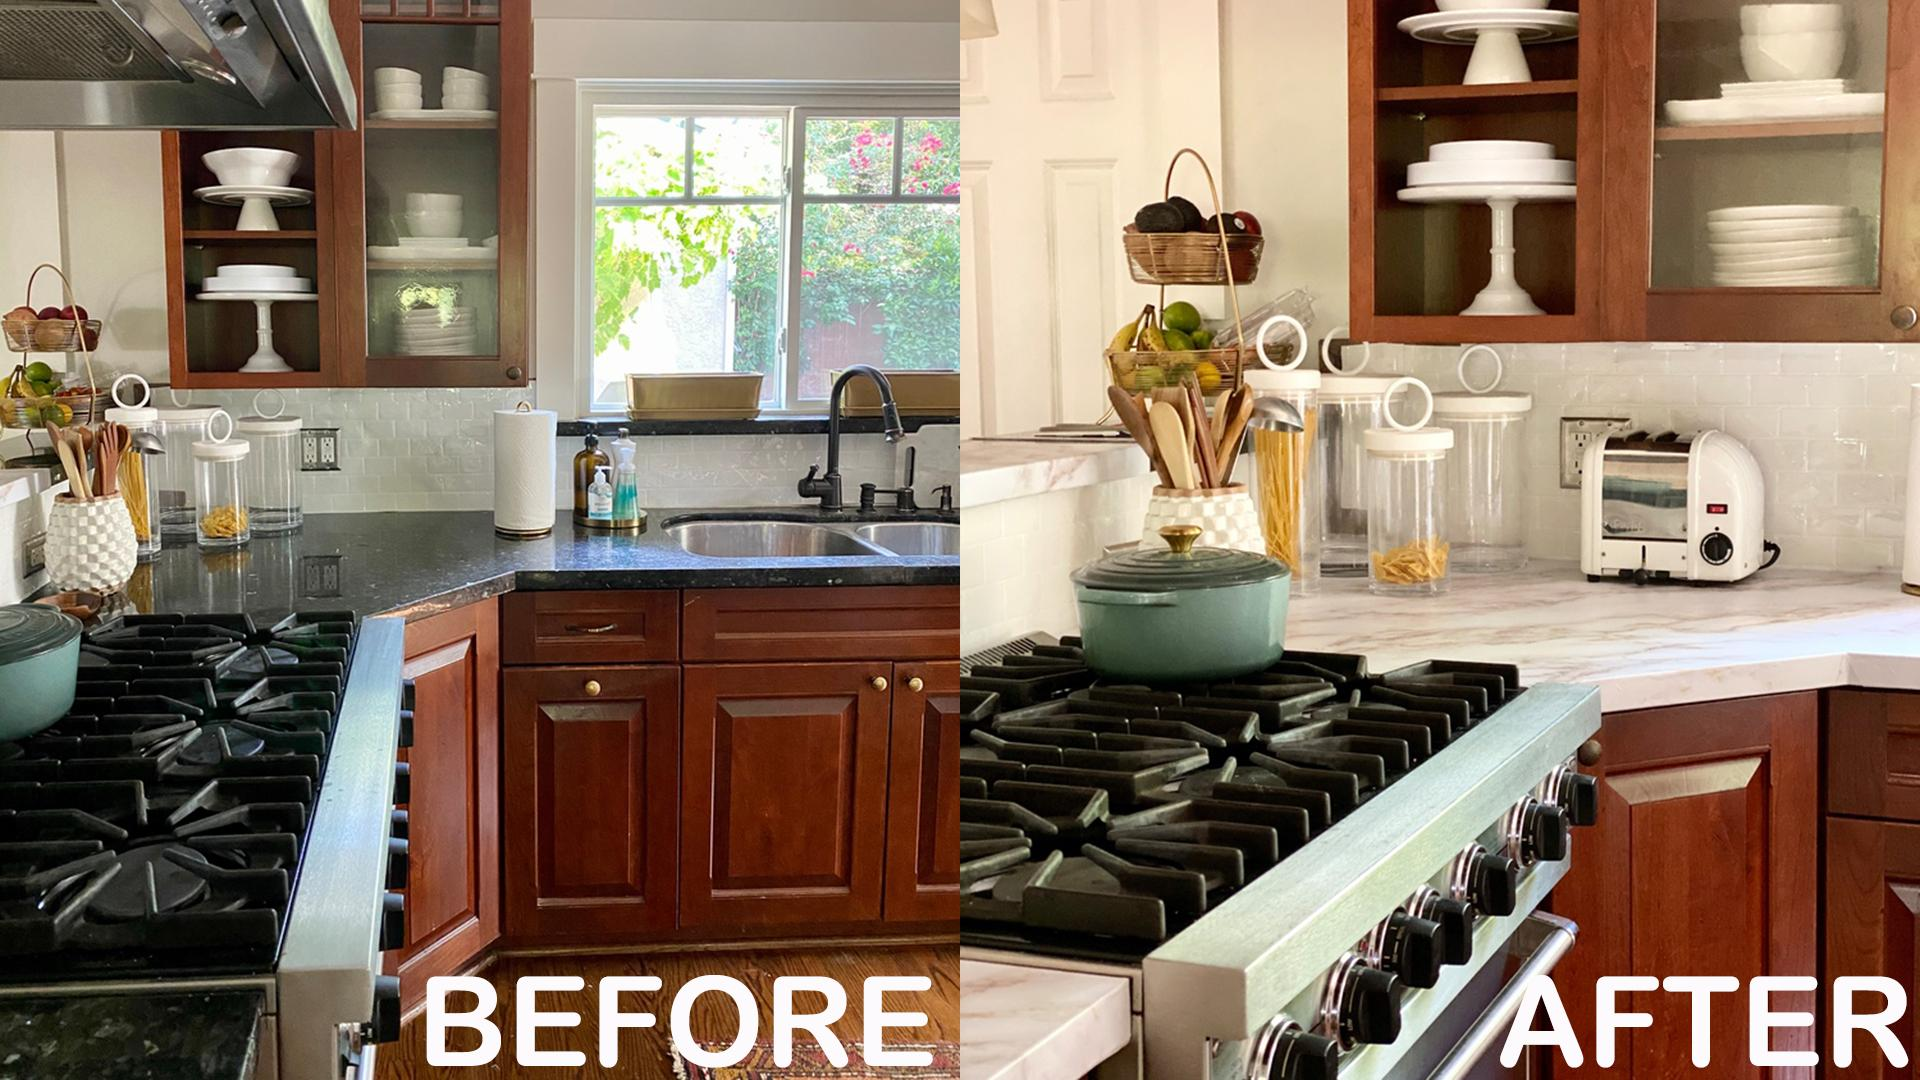 Rental Kitchen Makeover Kelsey Nixon S Peel And Stick Backsplash Countertop Tricks Rachael Ray Show